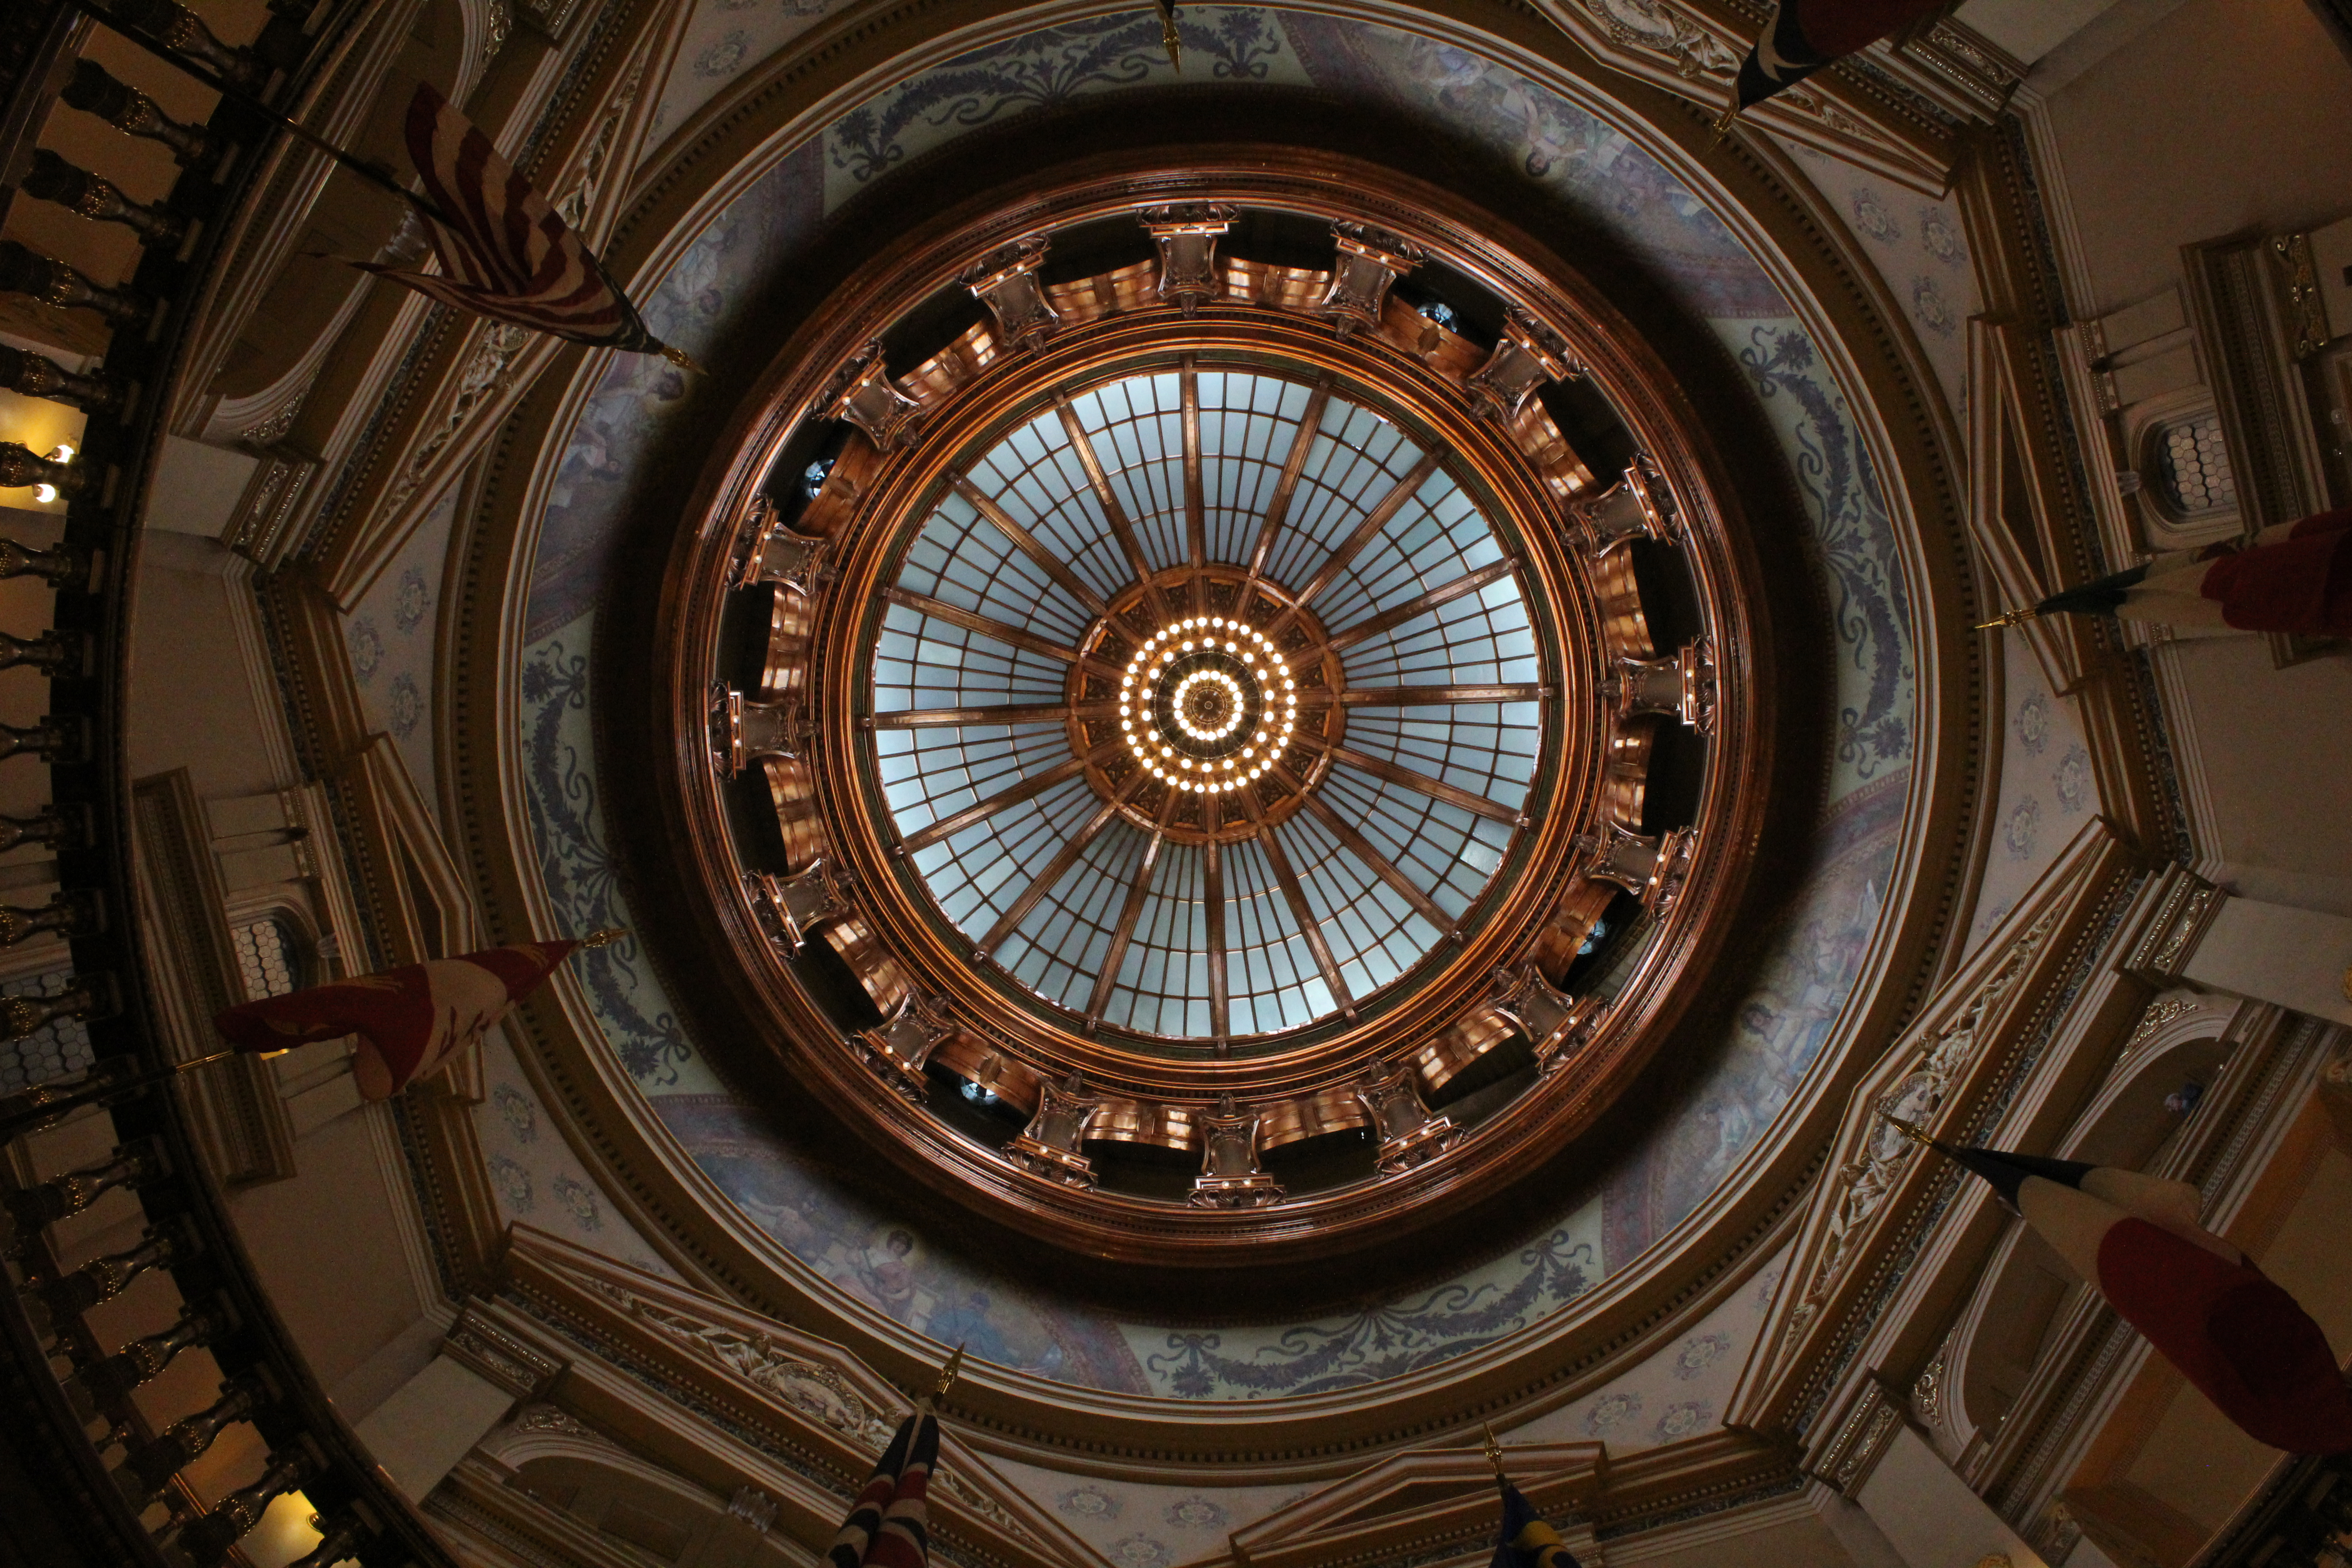 This is the view from inside the rotunda, looking up five floors and then some to the inner statehouse dome. (Photo by J. Schafer)